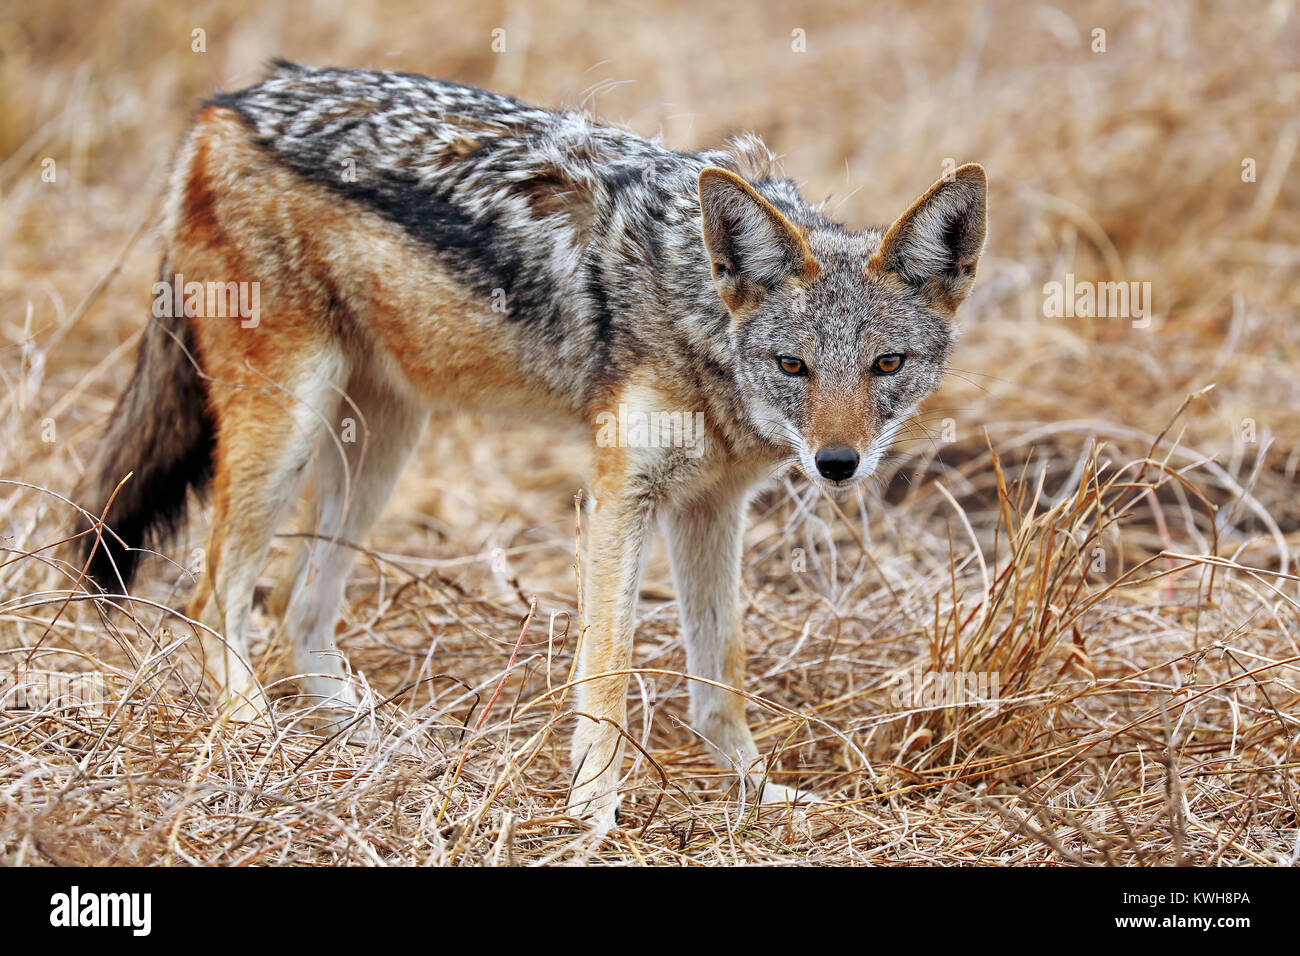 Schabrackenschakal im Kruger Nationalpark Südafrika; blackbacked Jackal, south africa, wildlife - Stock Image